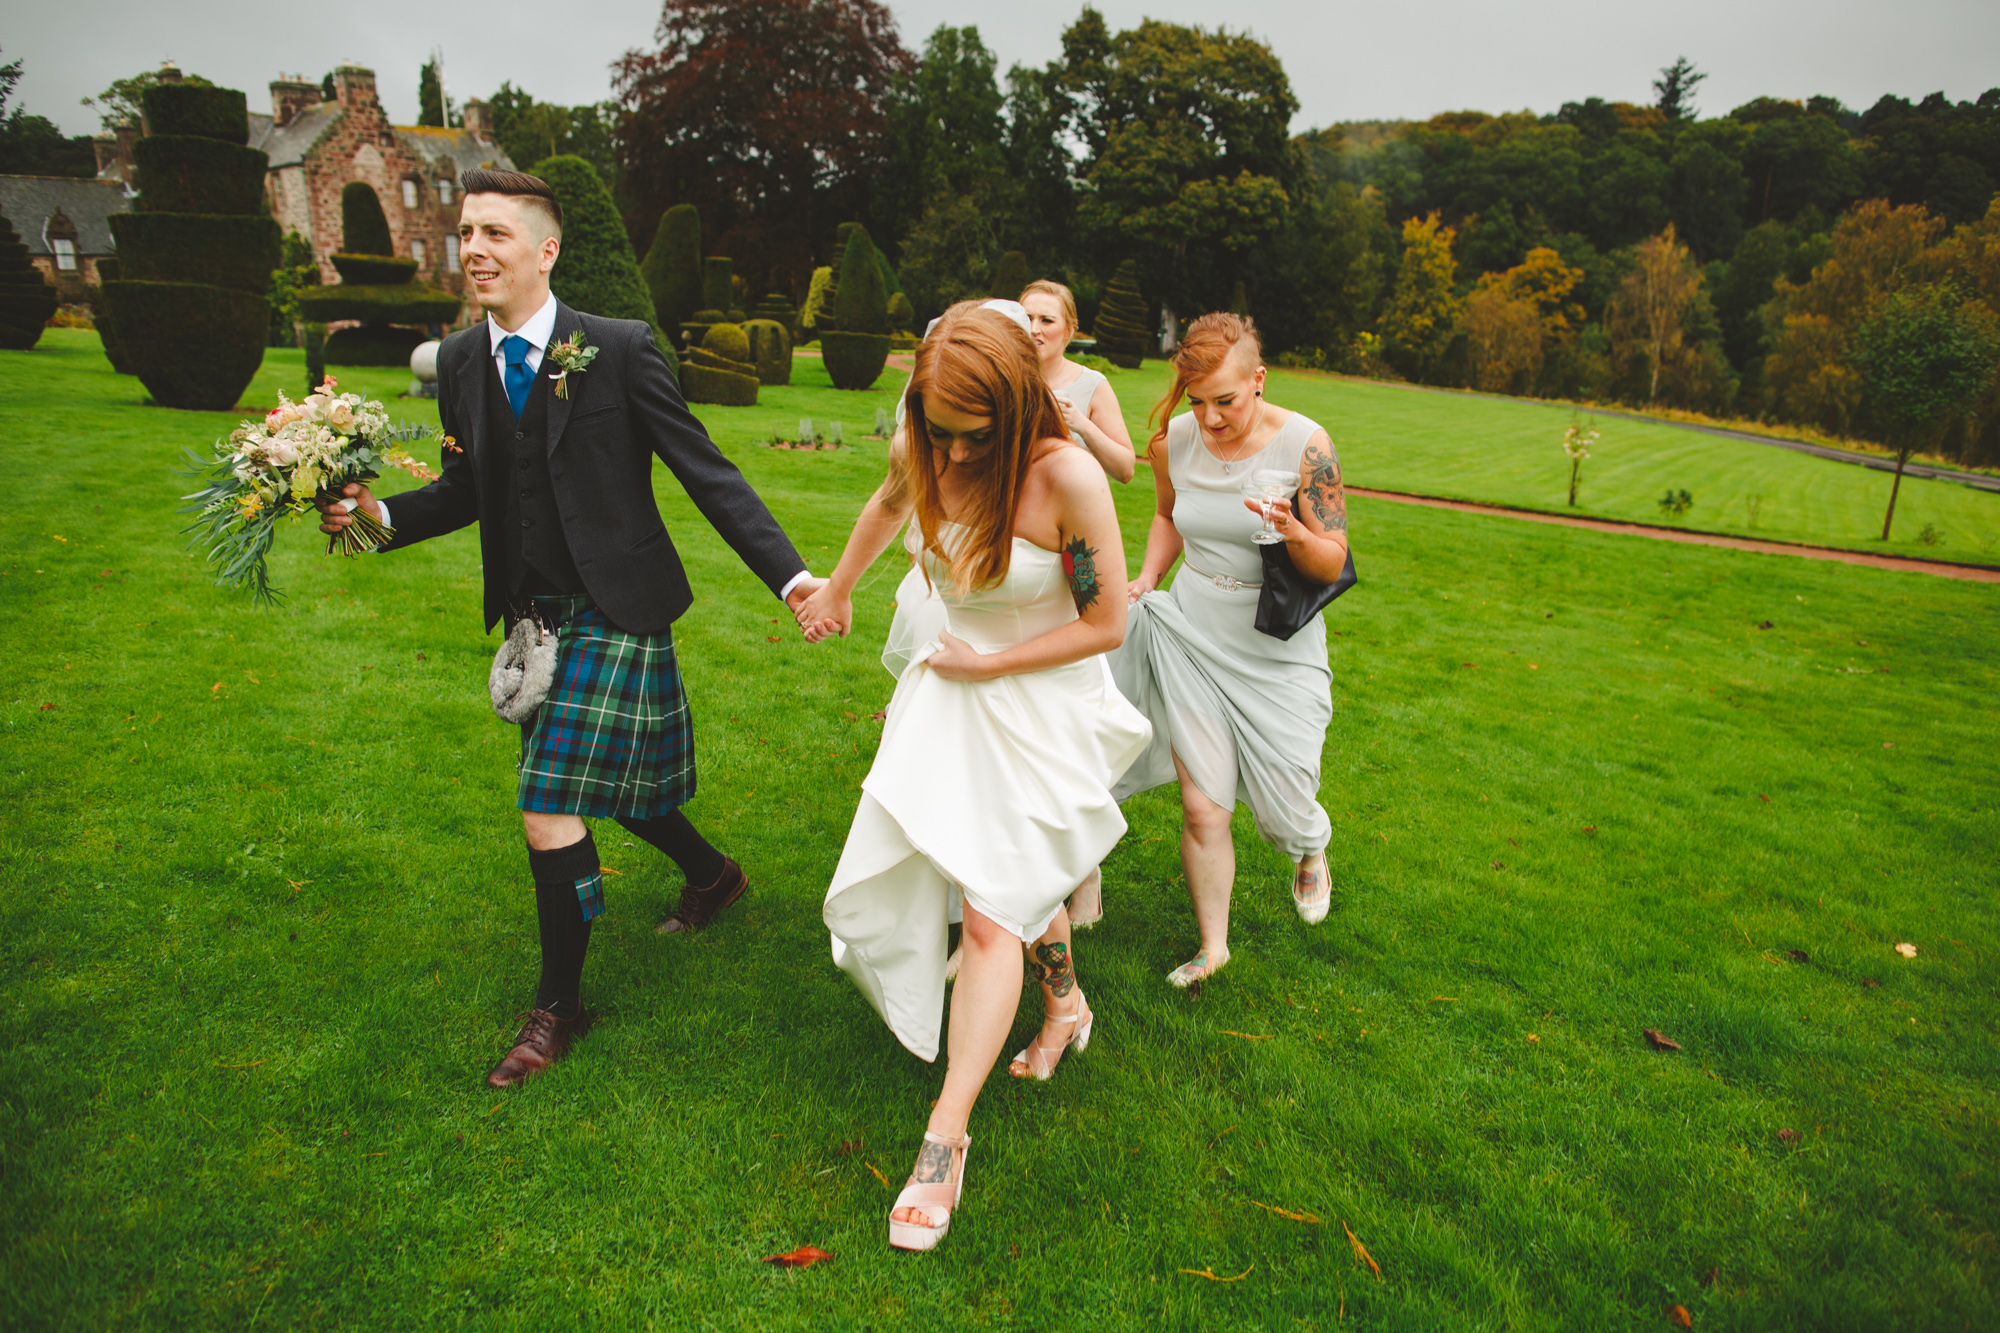 alternative-wedding-photographer-uk-camera-hannah-9.jpg